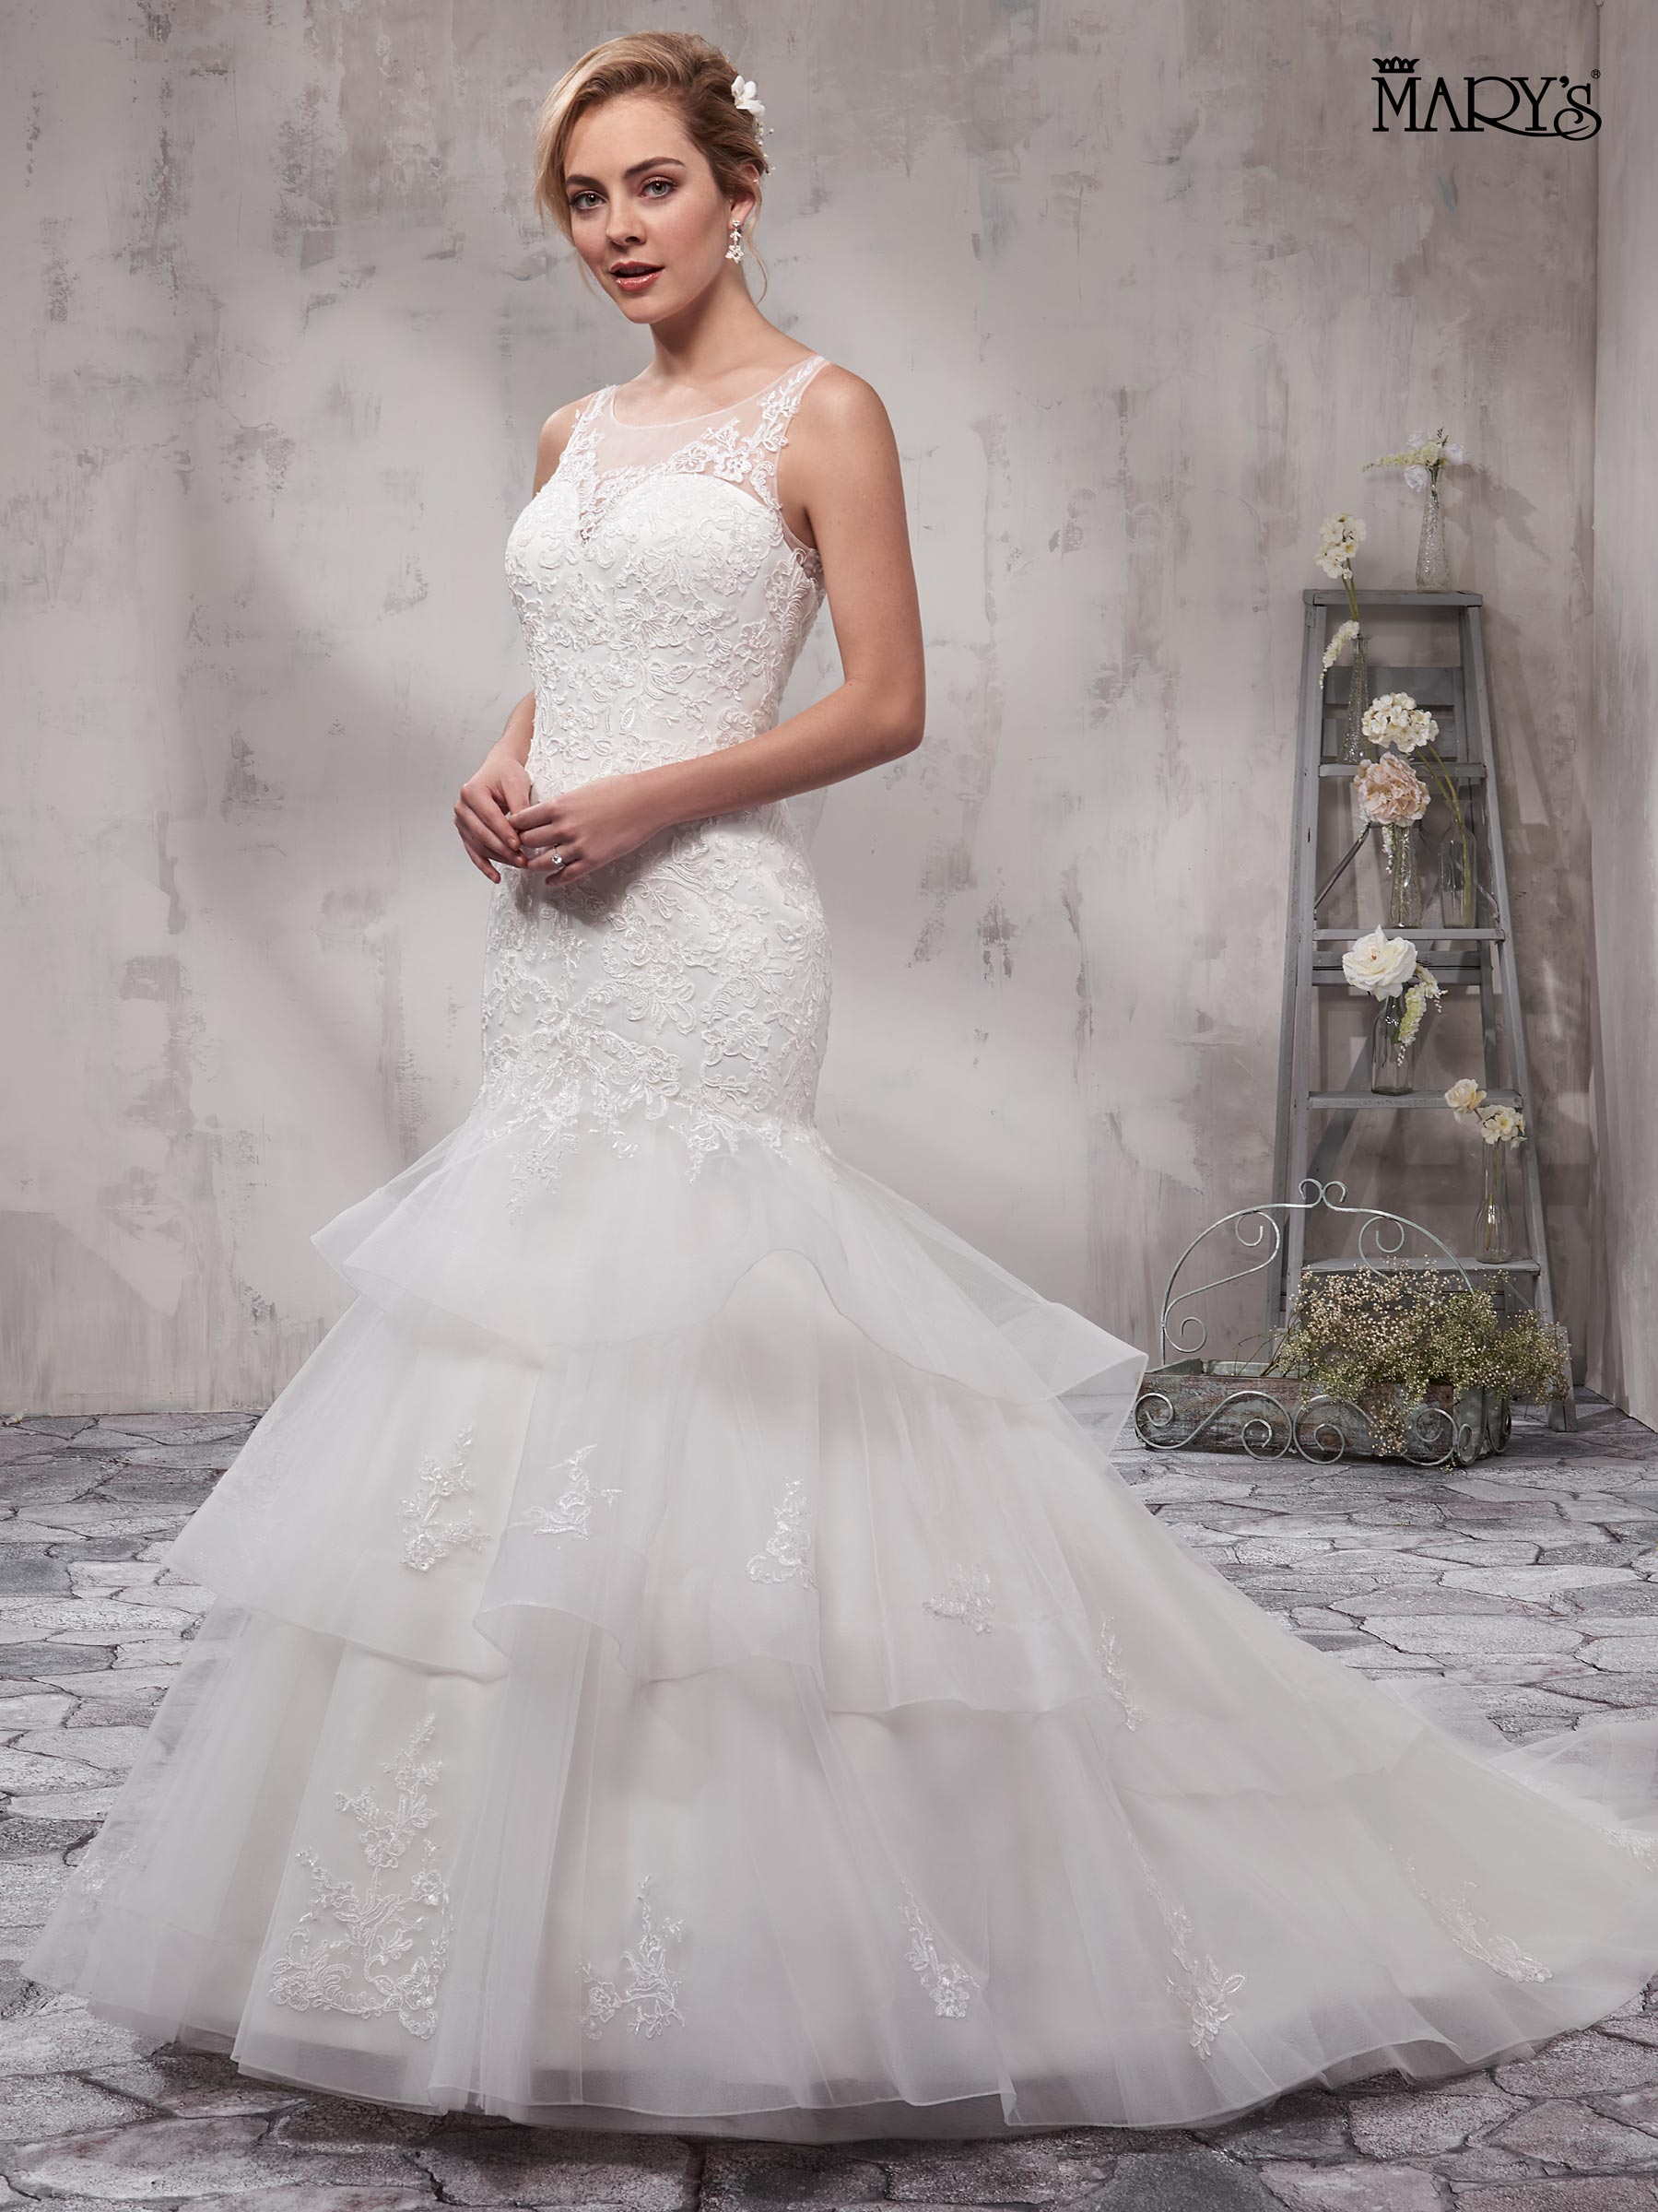 Bridal Wedding Dresses | Mary's | Style - MB3007